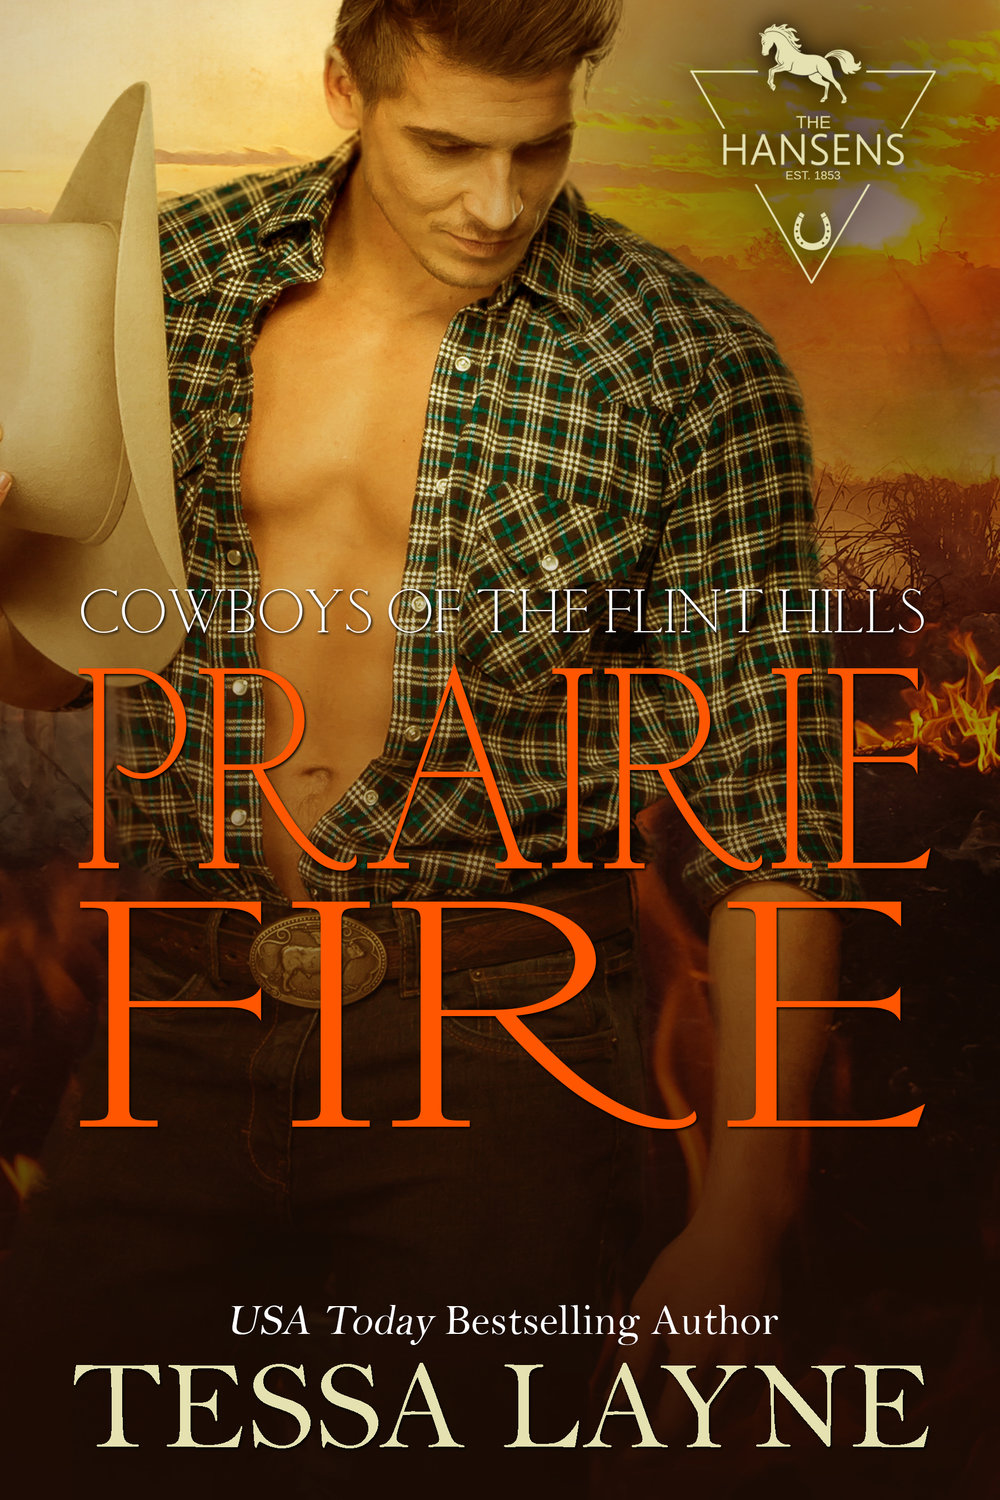 Only love can quench this fire - When Cassidy volunteers for a dangerous hotshot mission in the wilds of Colorado, Parker insists on going with her. As they travel together into a life-threatening situation, will their love combust like the trees that surround them? And in the battlefield of a forest fire, will Cassidy be brave enough to fight for the one thing that will snuff out the fires that rage within her?